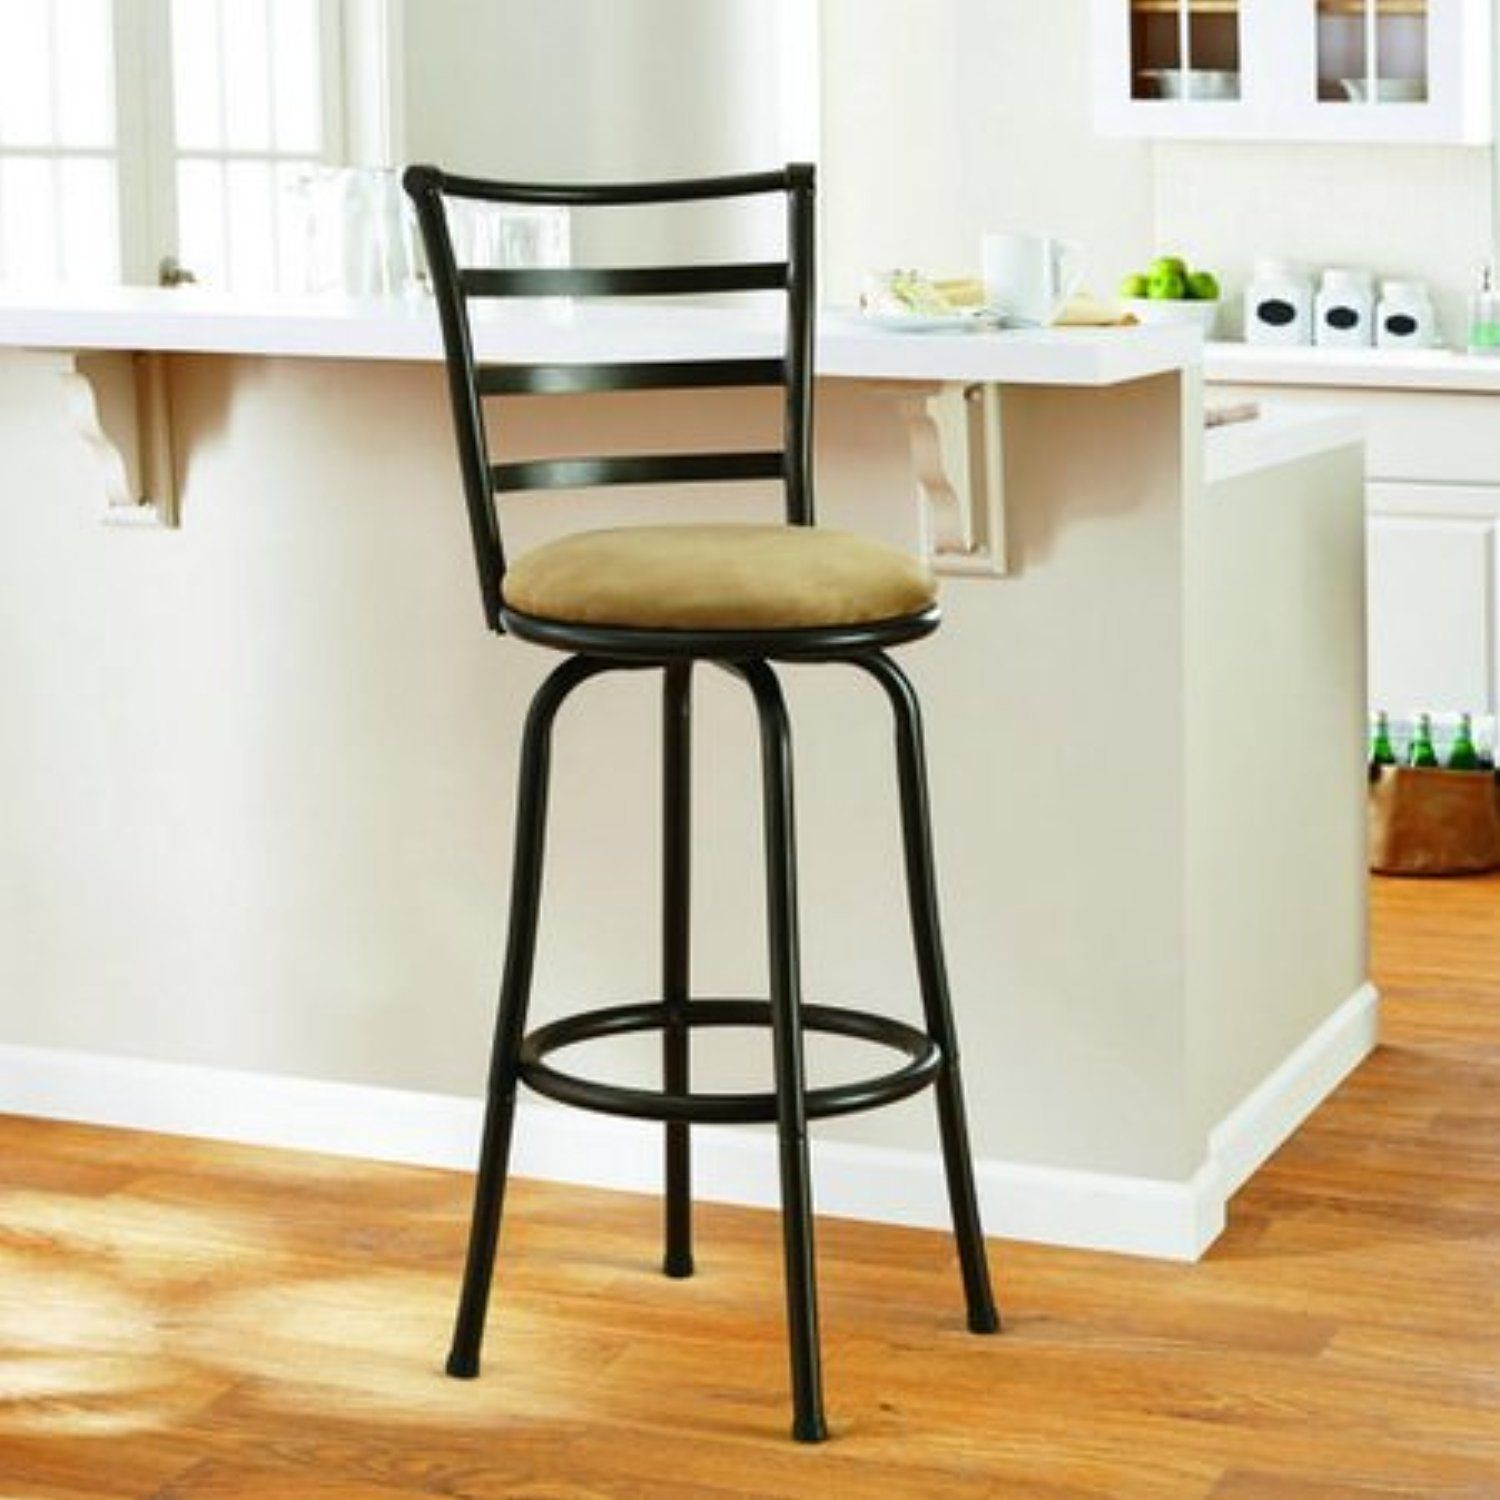 Mainstays 29 Ladder Back Barstool With Tan Microfiber Swivel Stool Hammered Awesome Products Bar Stools High Back Dining Chairs Counter Height Bar Stools 29 inch bar stools with back